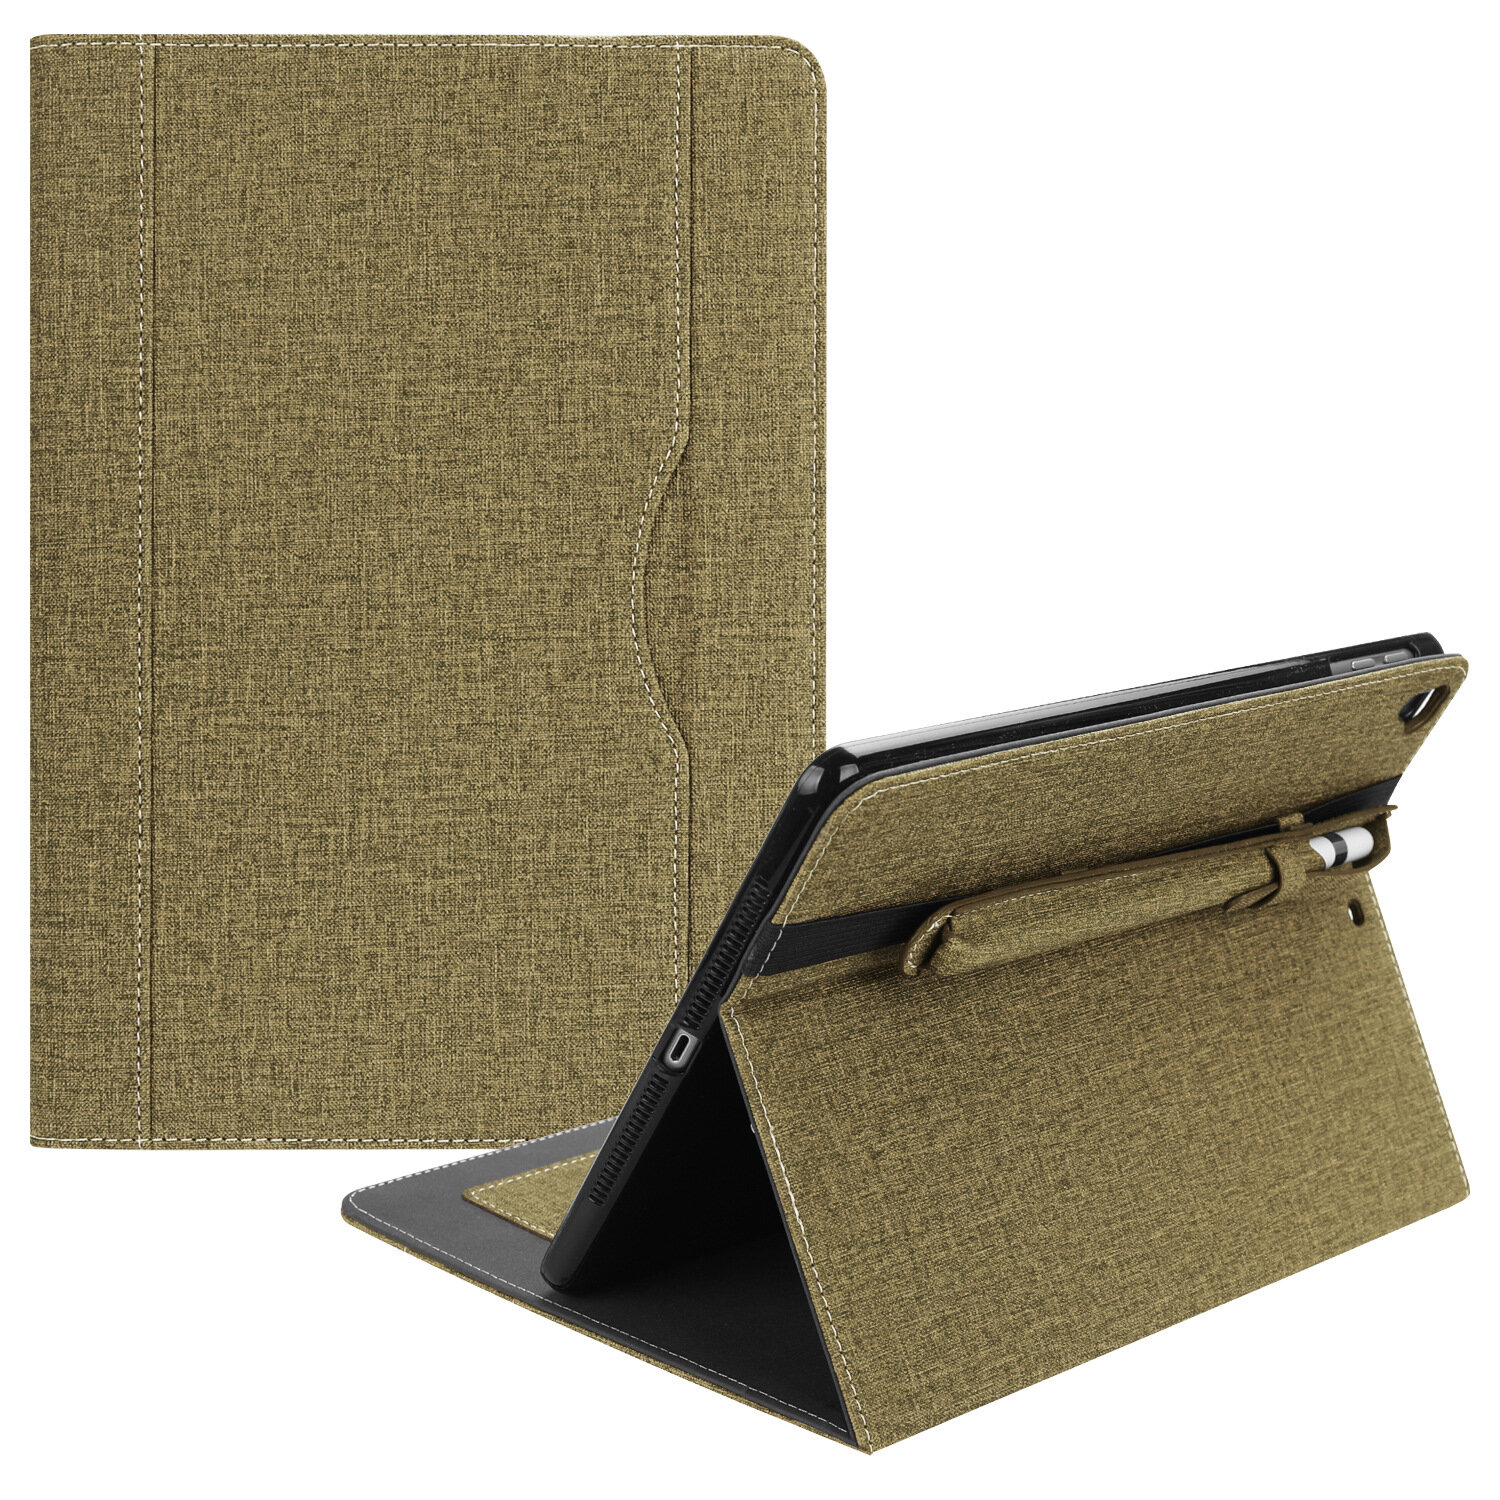 Business Canvas Tablet Case With Pencil Holder For iPad Air/Air 2/New iPad 2017/2018